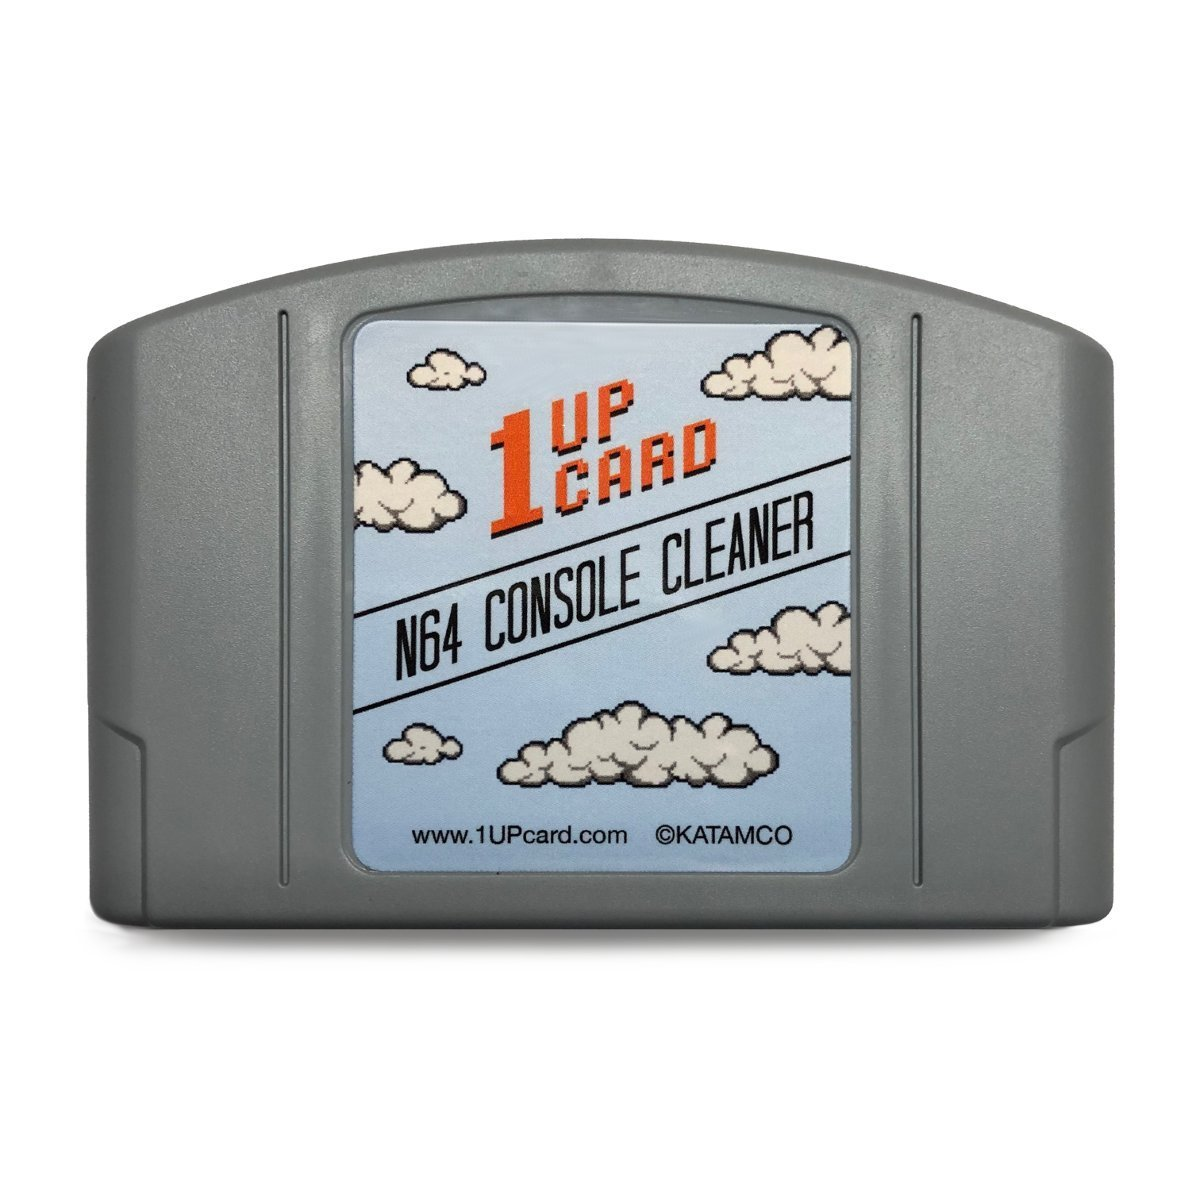 N64 console cleaner by 1UPcard - Nintendo 64 cleaning kit